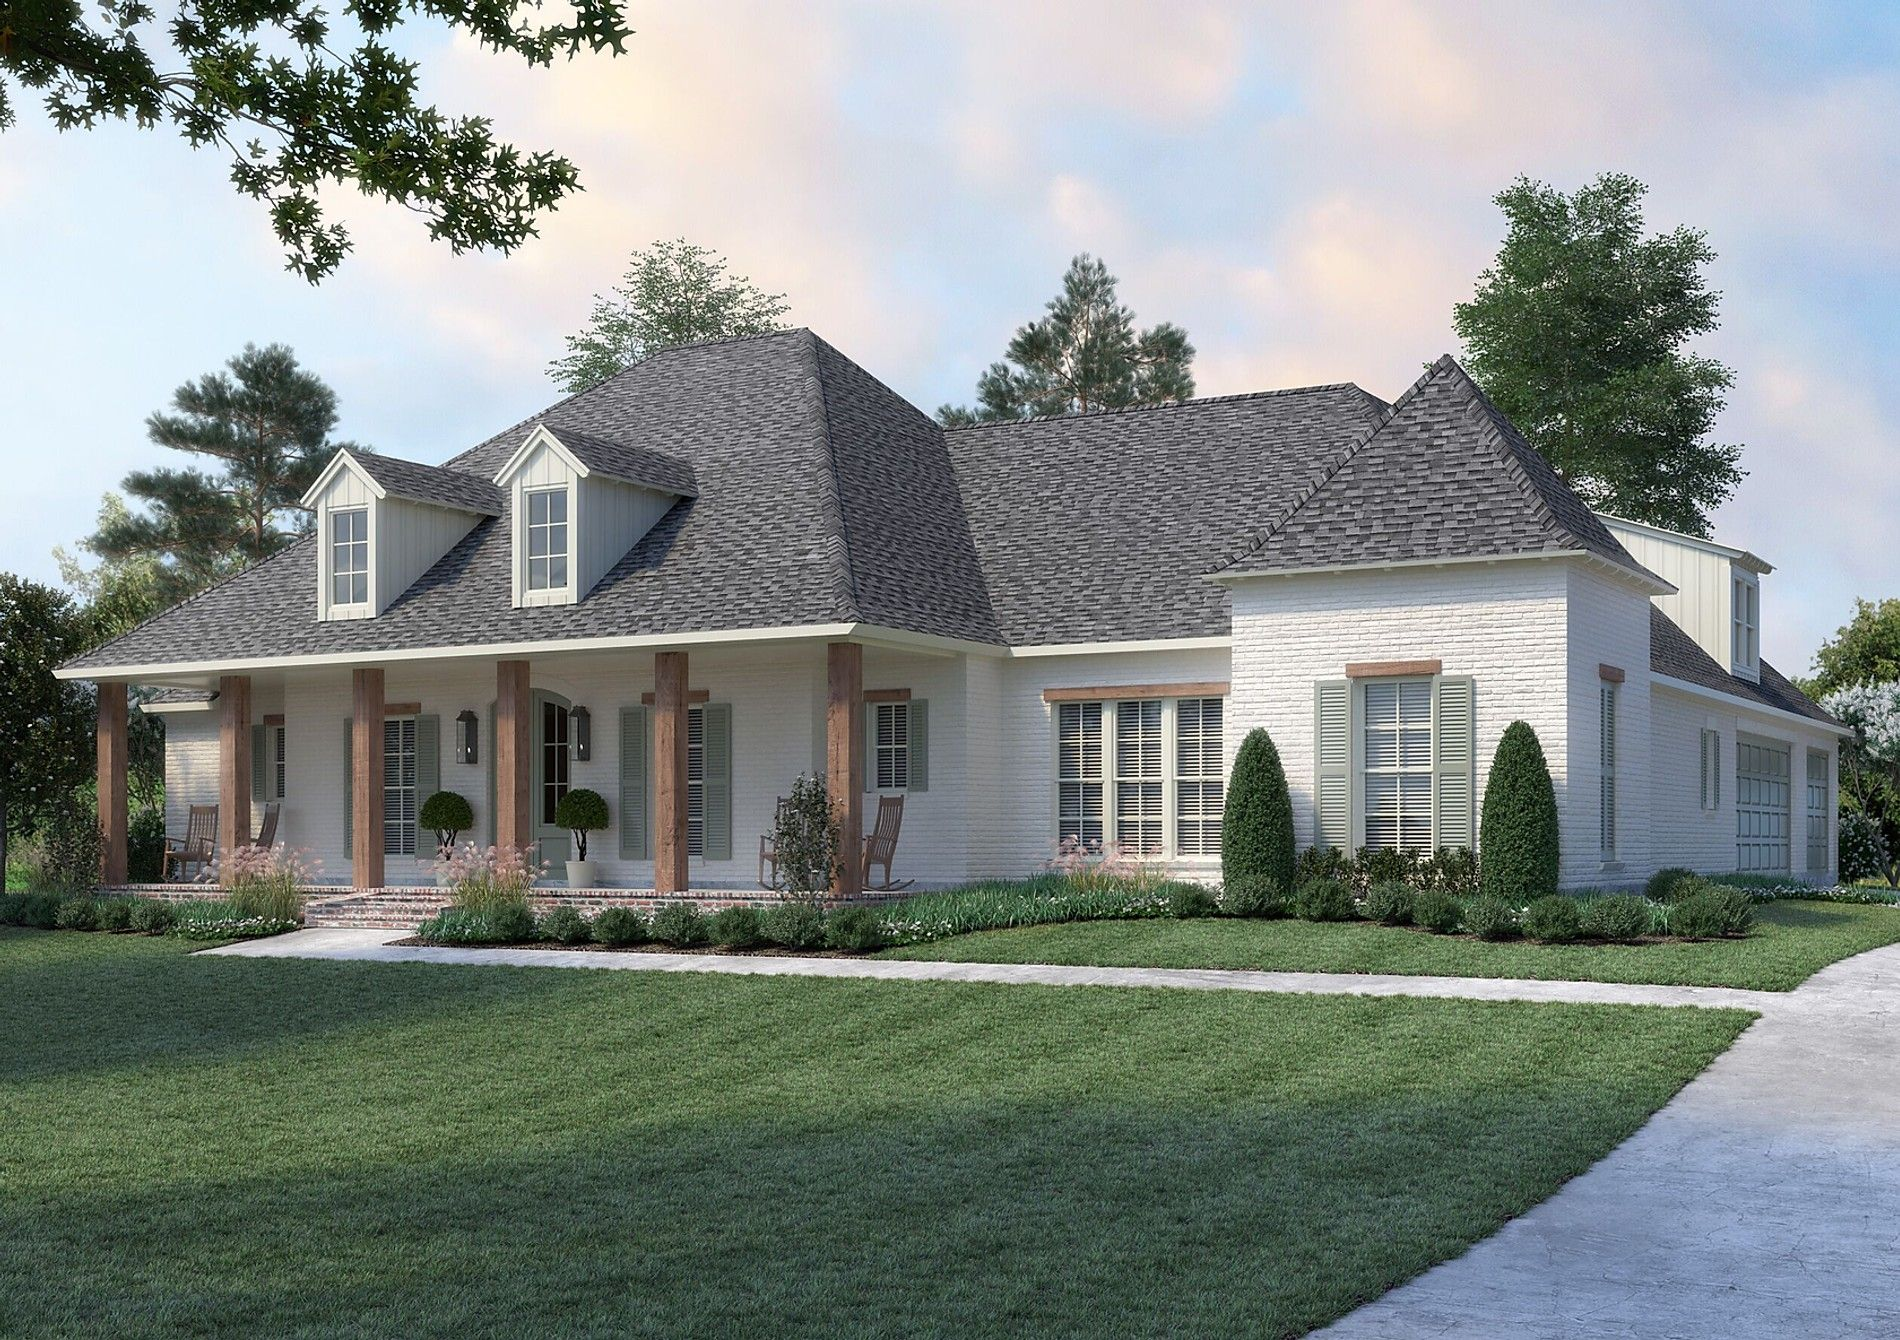 The Baton Rouge Madden Home Design Louisiana Style In 2020 Madden Home Design Acadian House Plans Acadian Style Homes